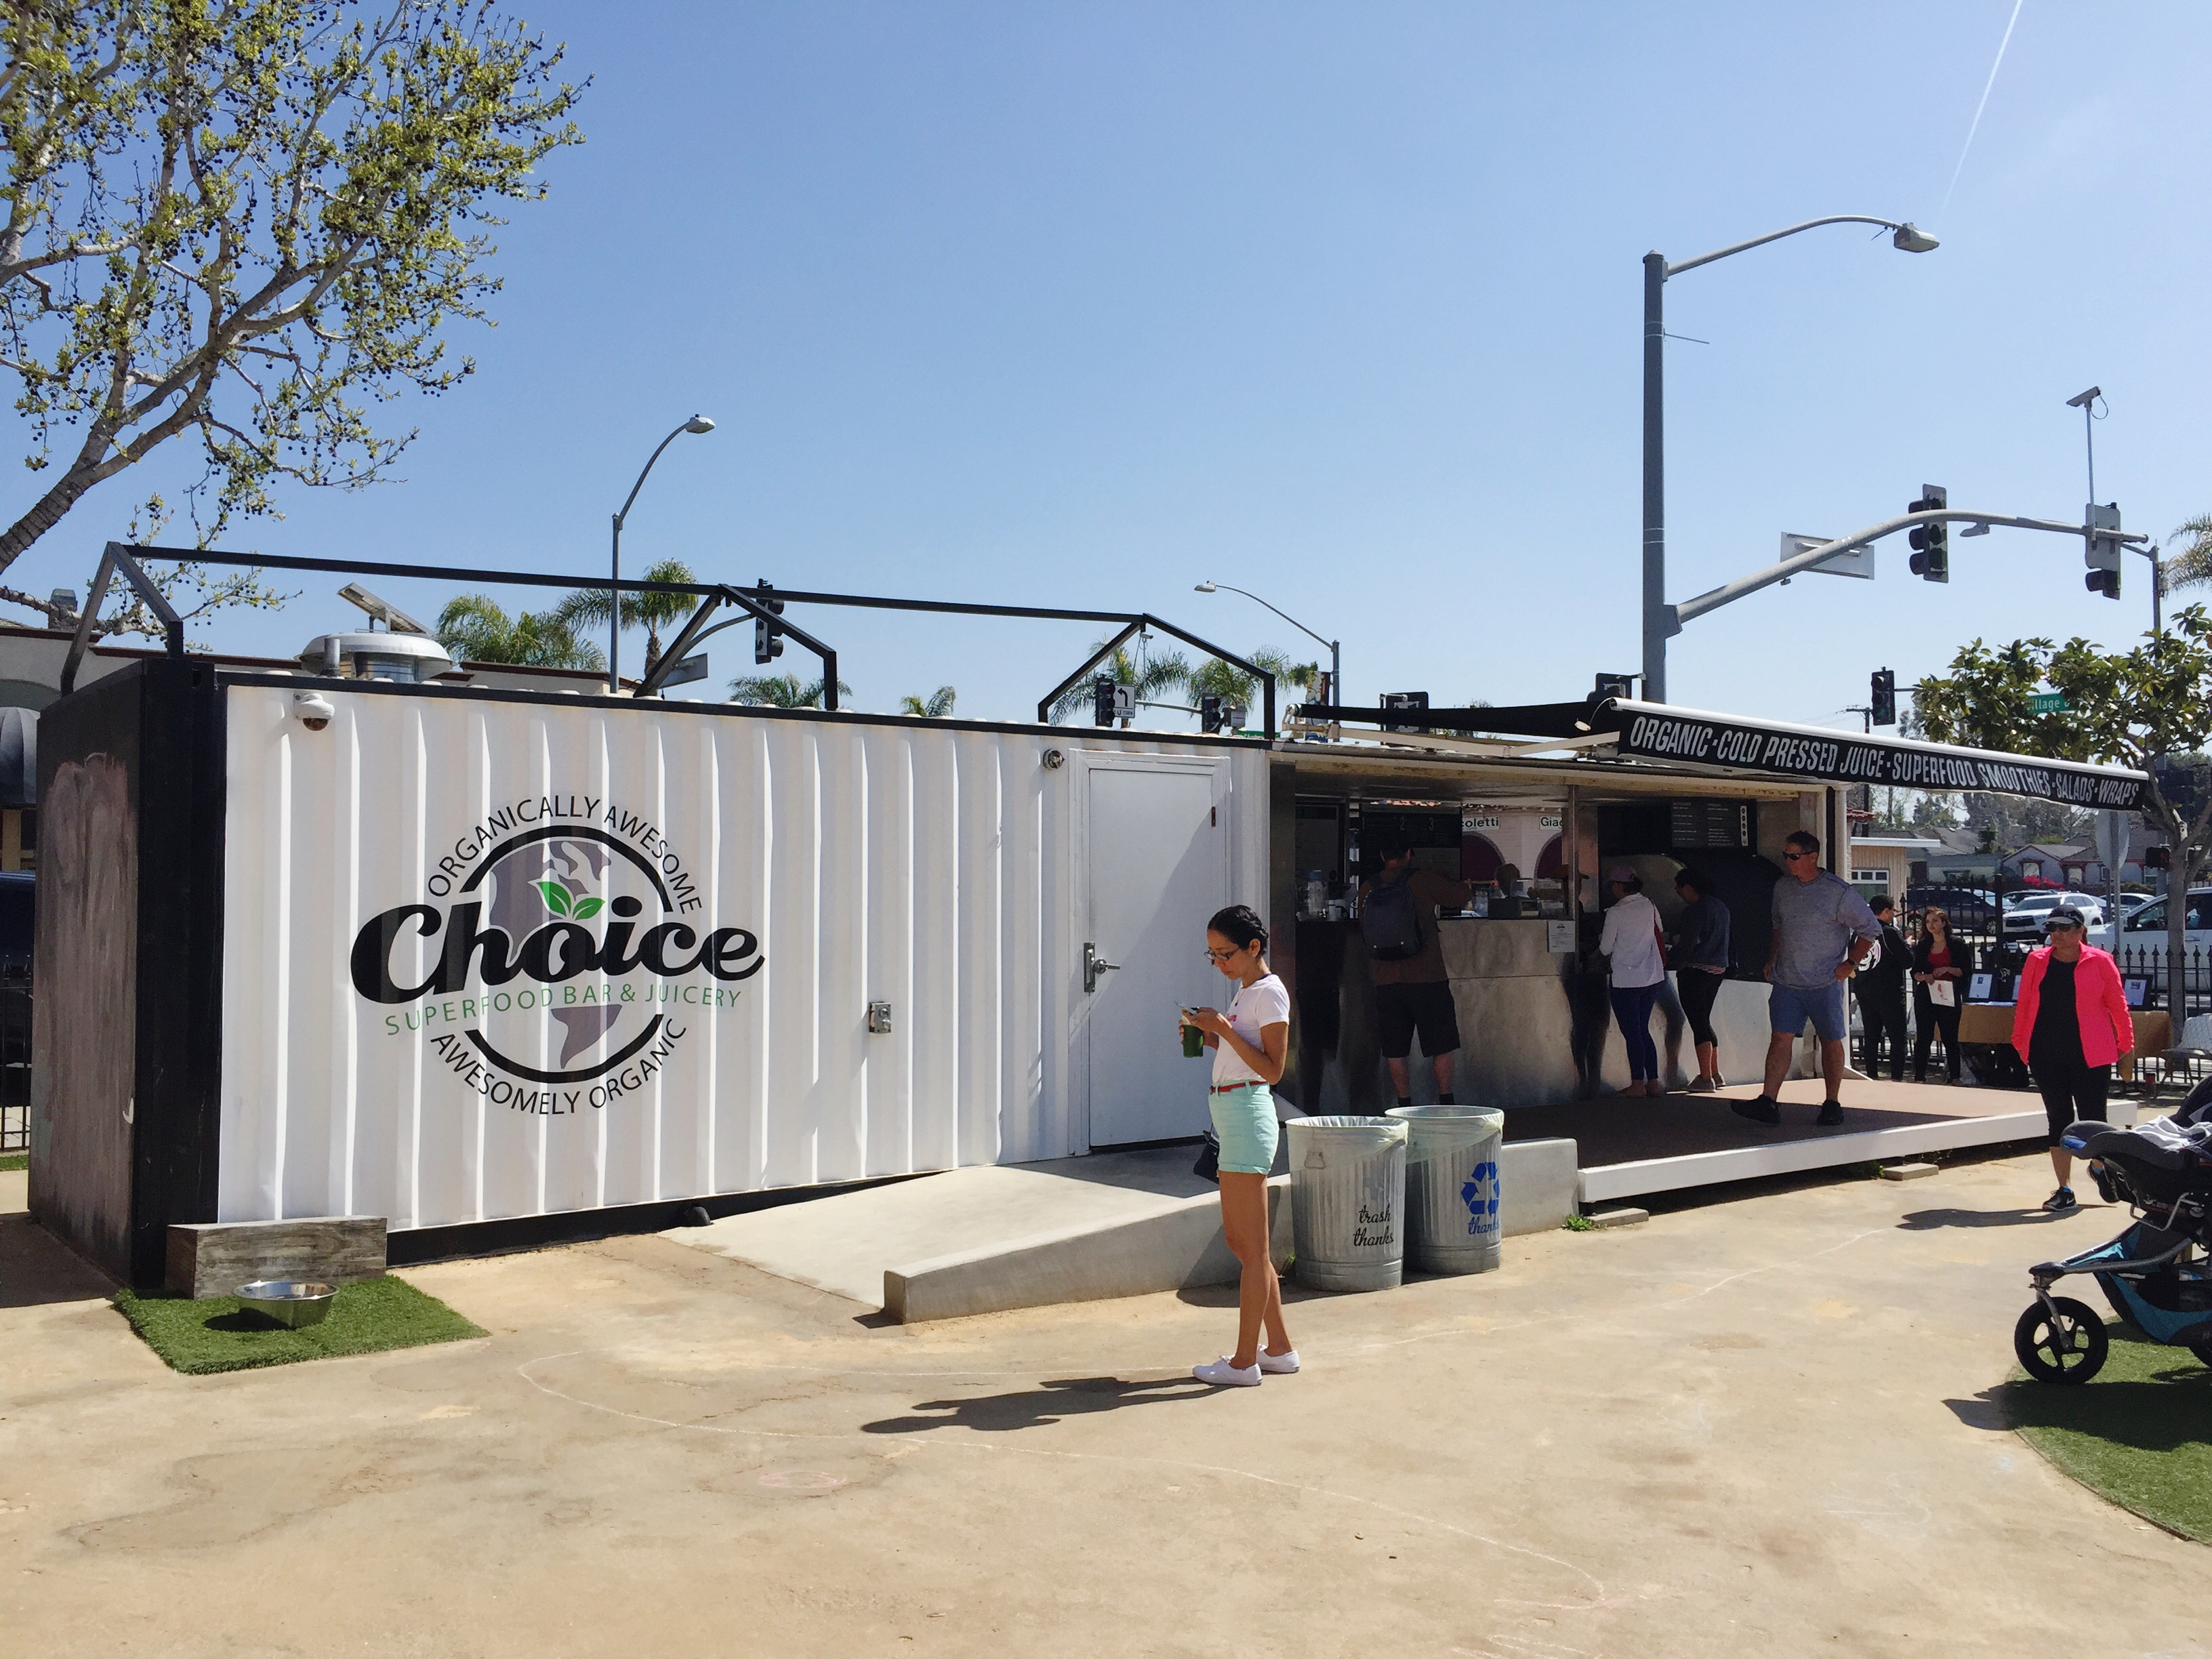 southern california local eats and activities